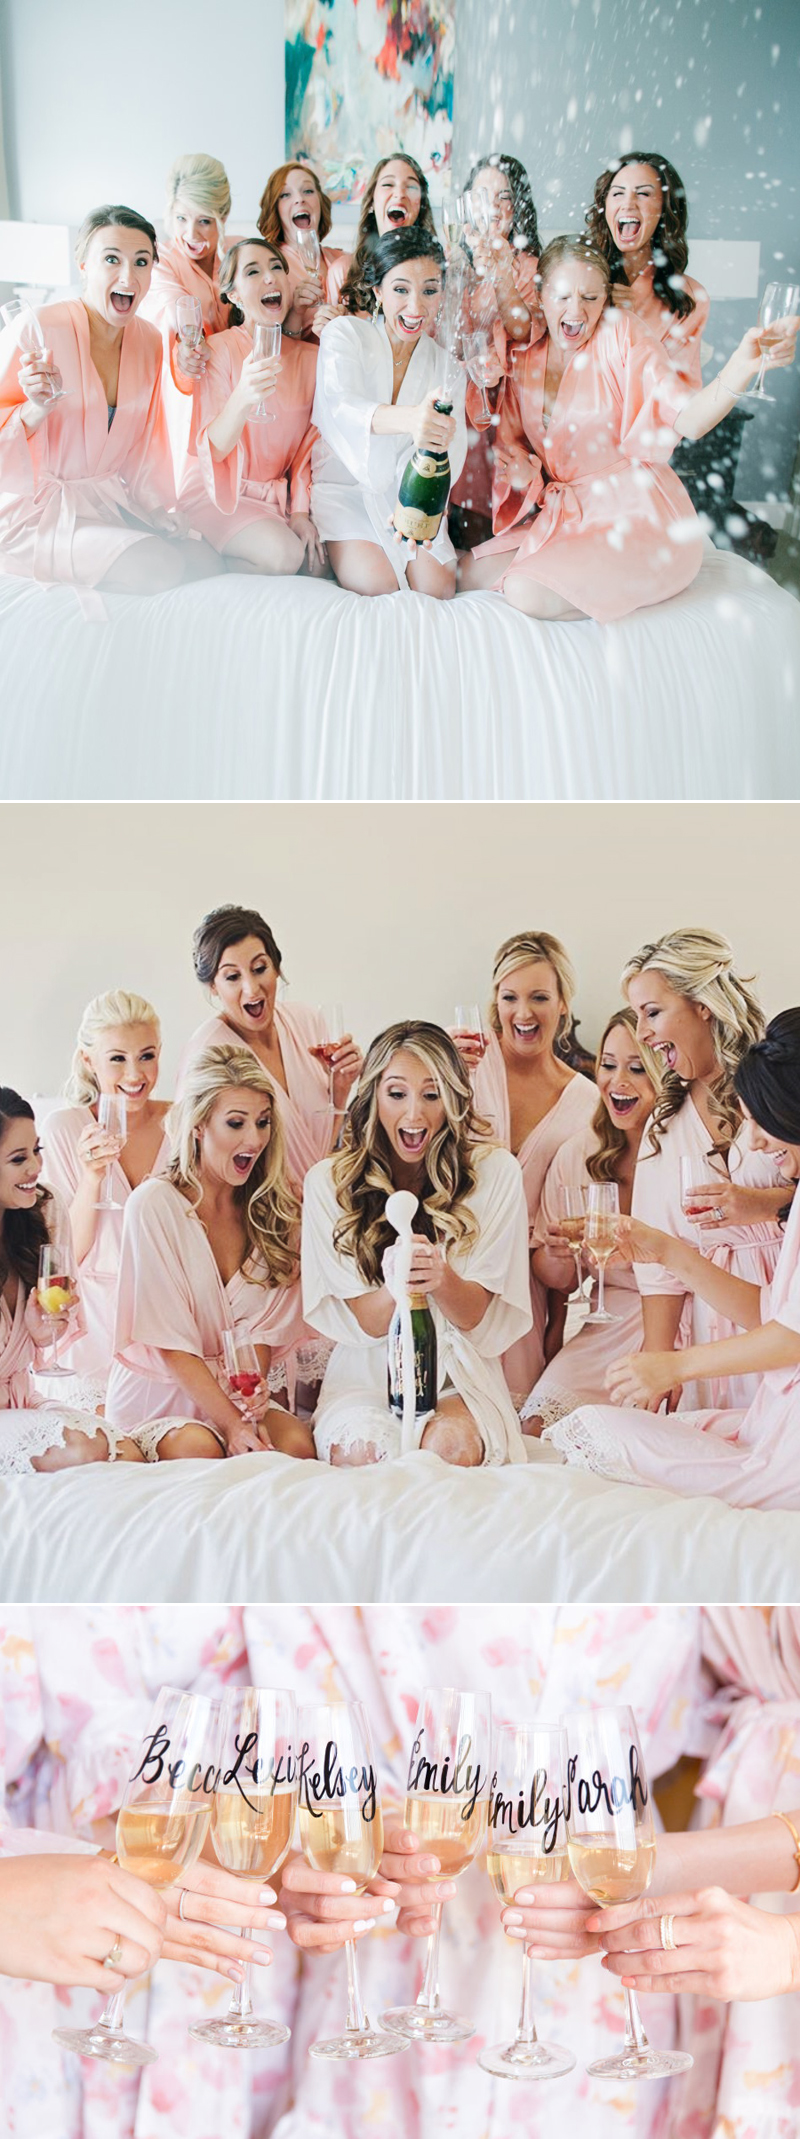 bridesmaid-get-ready02-bubbly-champagne-toast